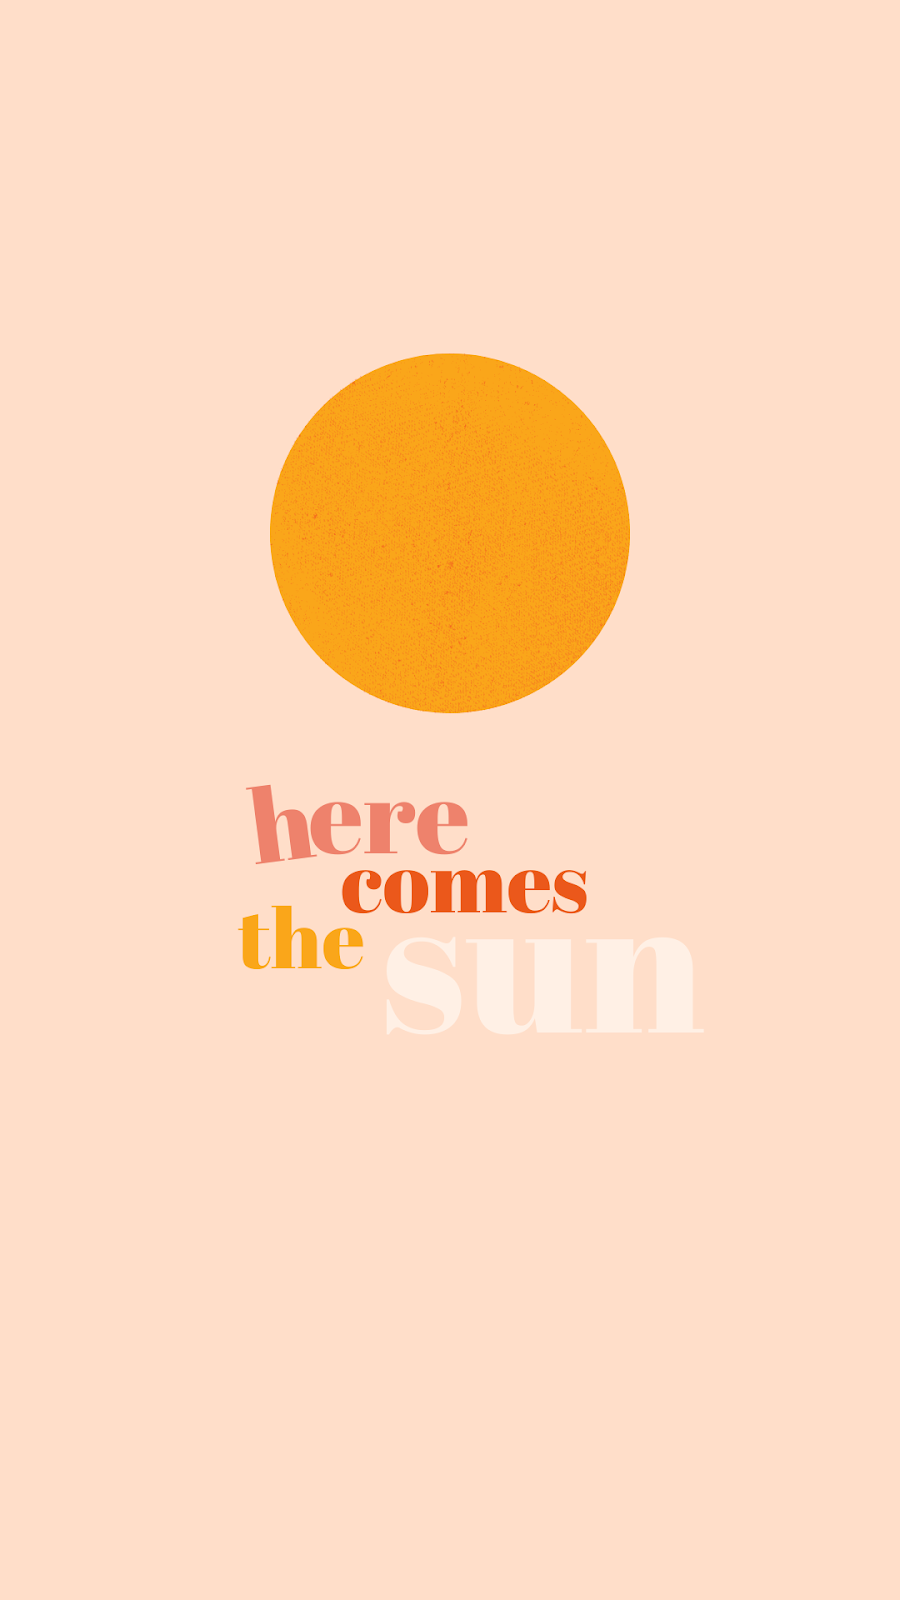 Here Comes The Sun Printable Quotes Digital Download Instant Download Printable Art Graphic Art Iphone Background Wallpaper Iphone Wallpaper Iphone Background